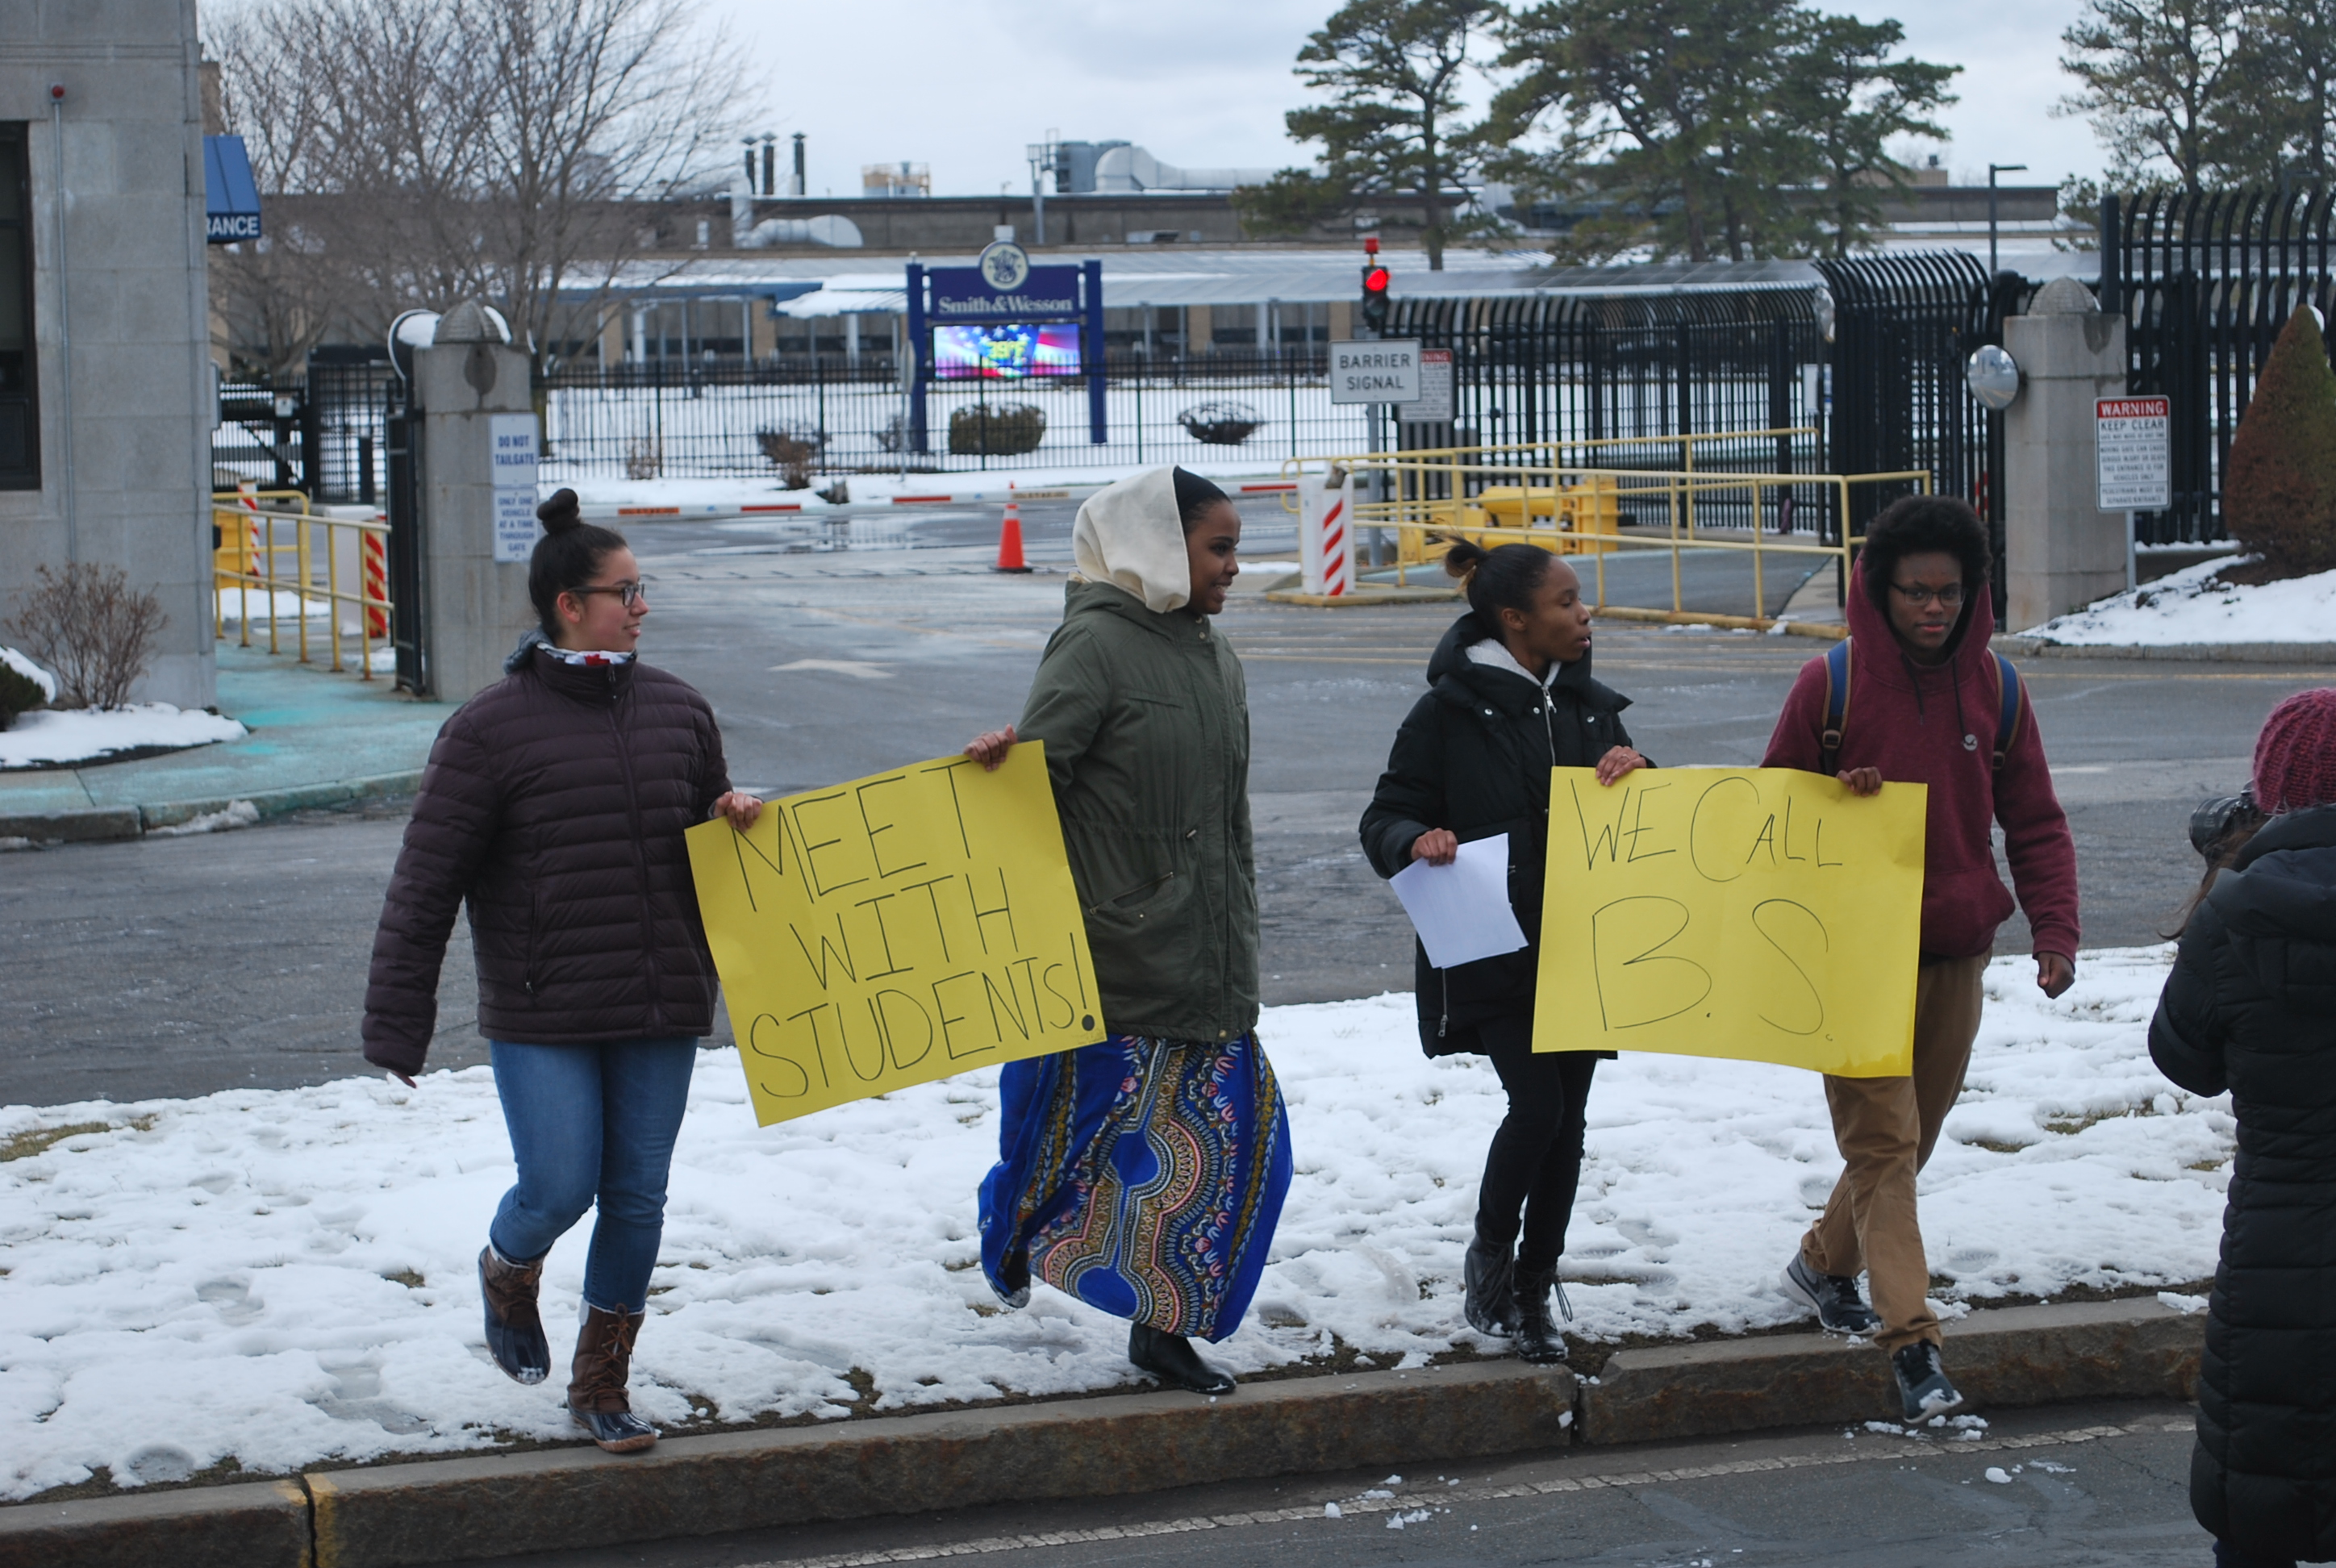 Amid school walkouts protesters in springfield demand meeting about students from springfield and boston delivered a message to meet with smith wessons ceo to security officers photo by chris goudreau fandeluxe Images